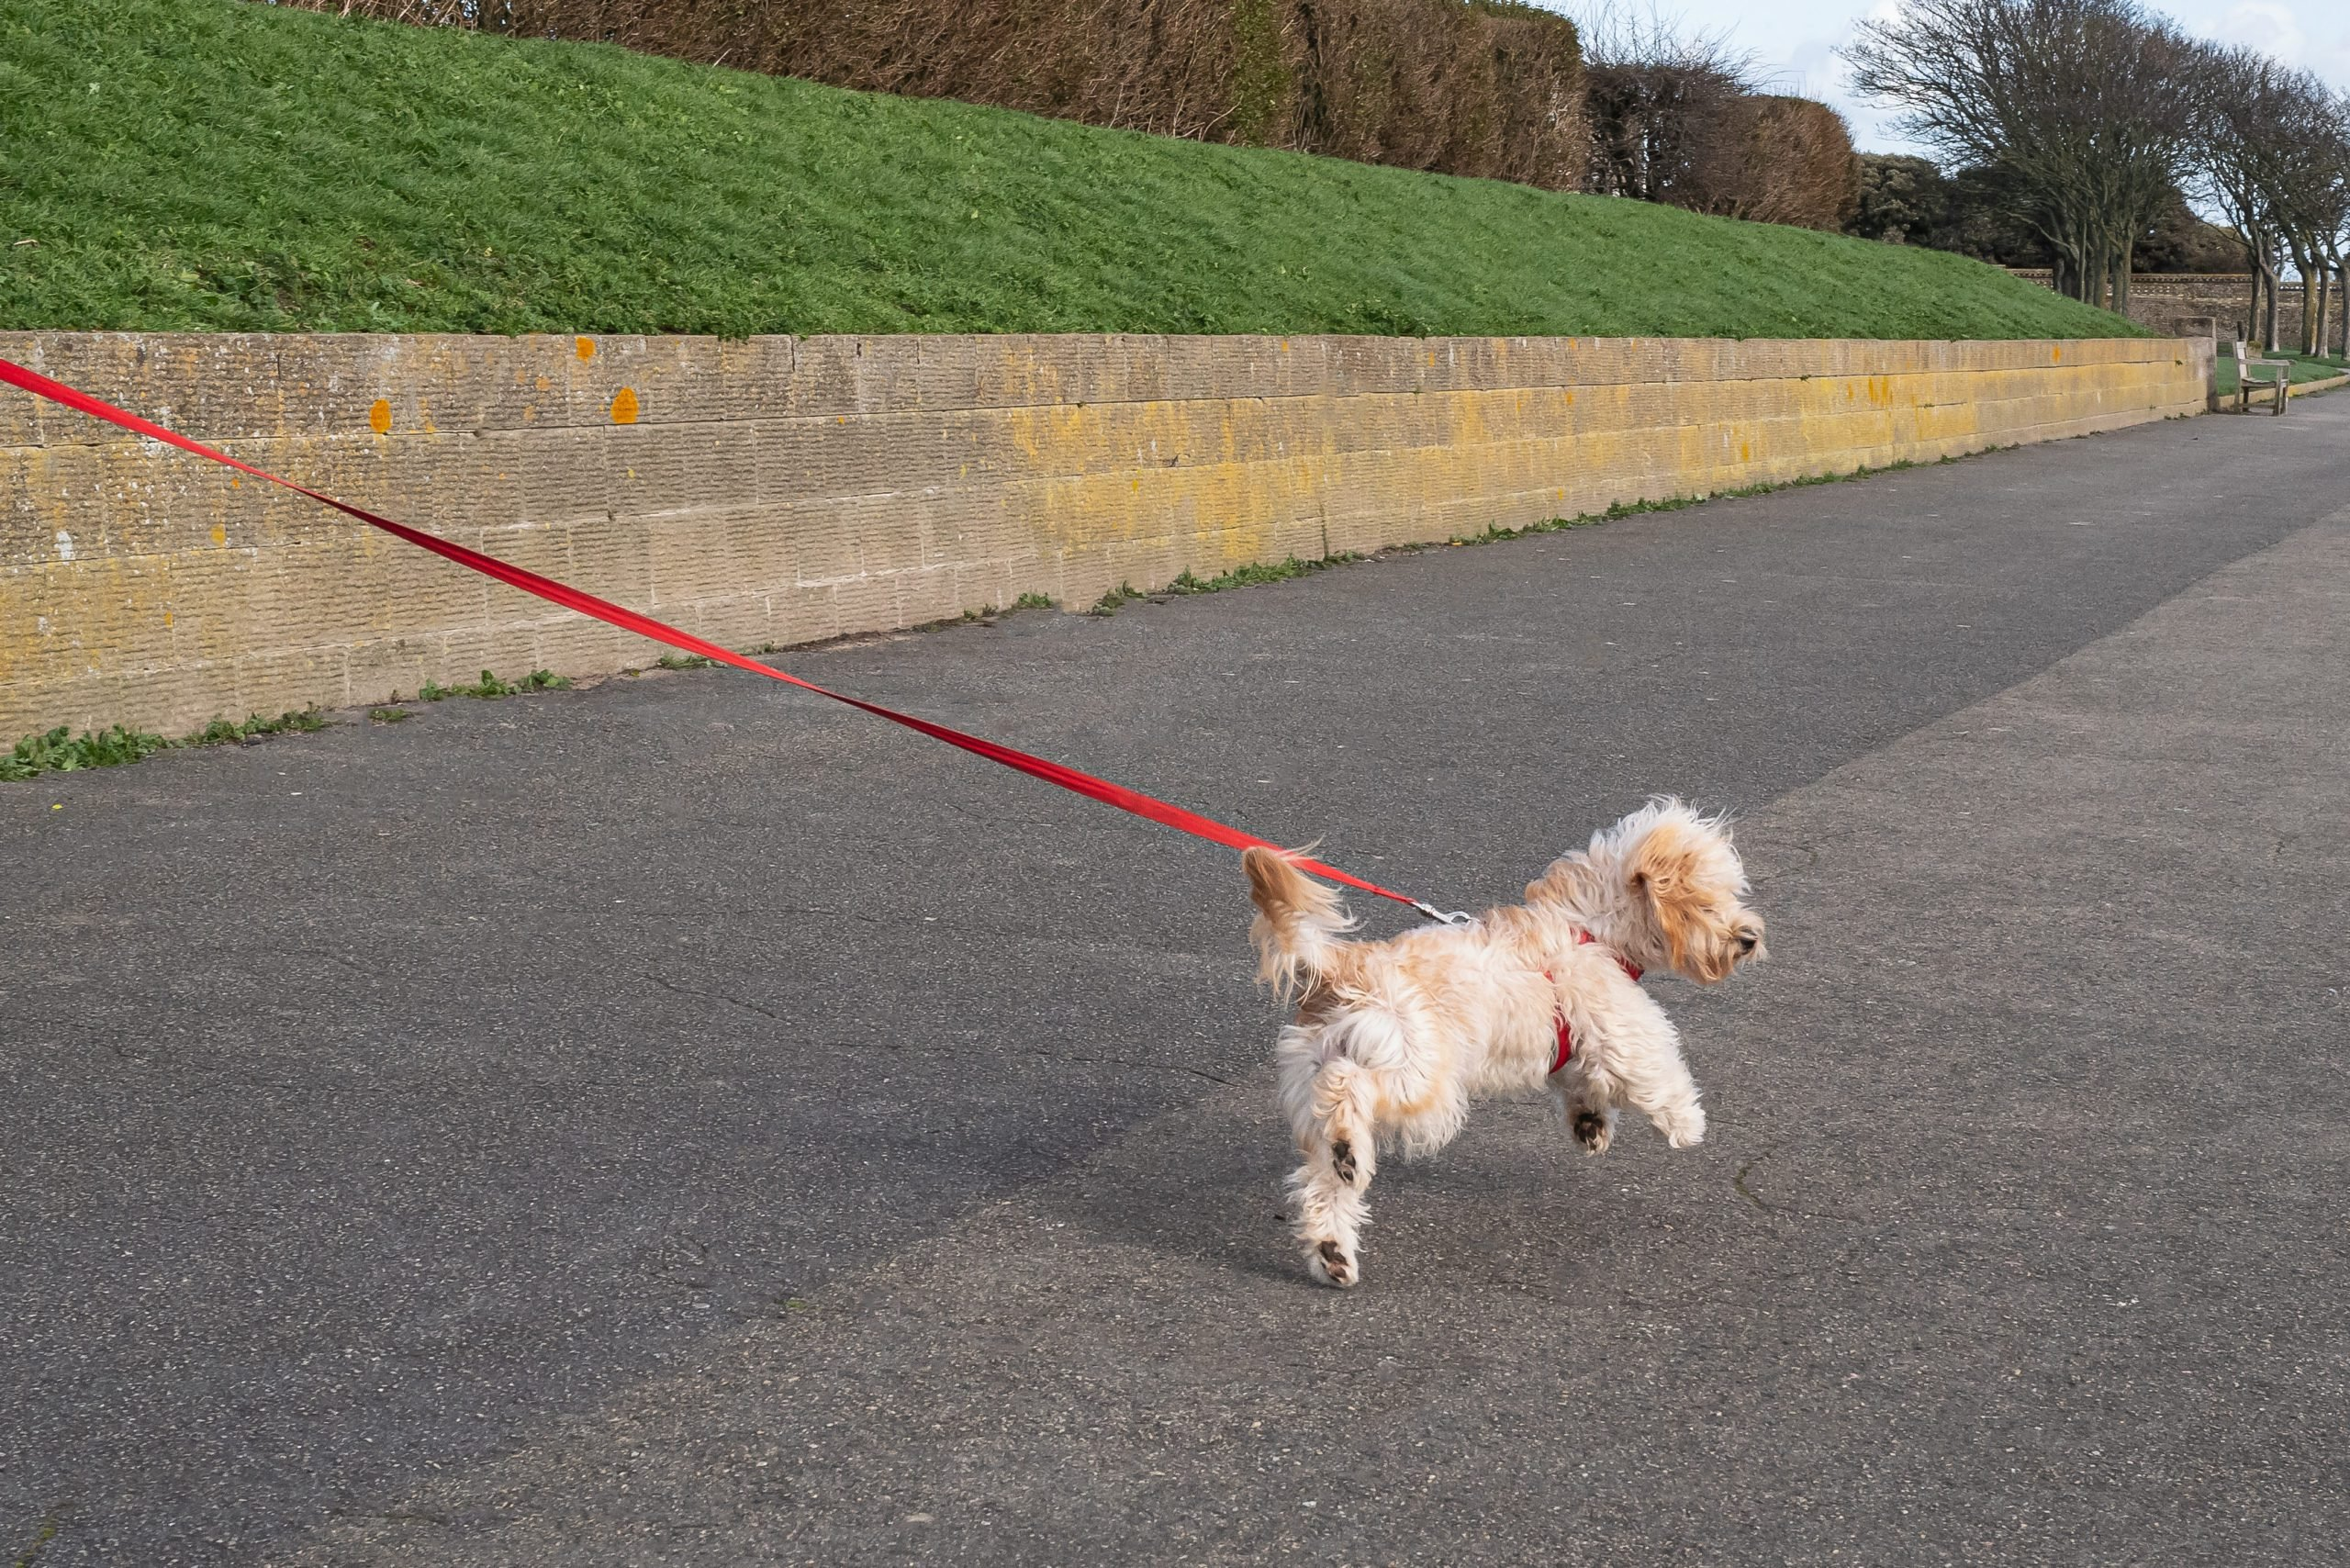 Cute Maltese type fluffy dog outside pulling on a red lead or leash